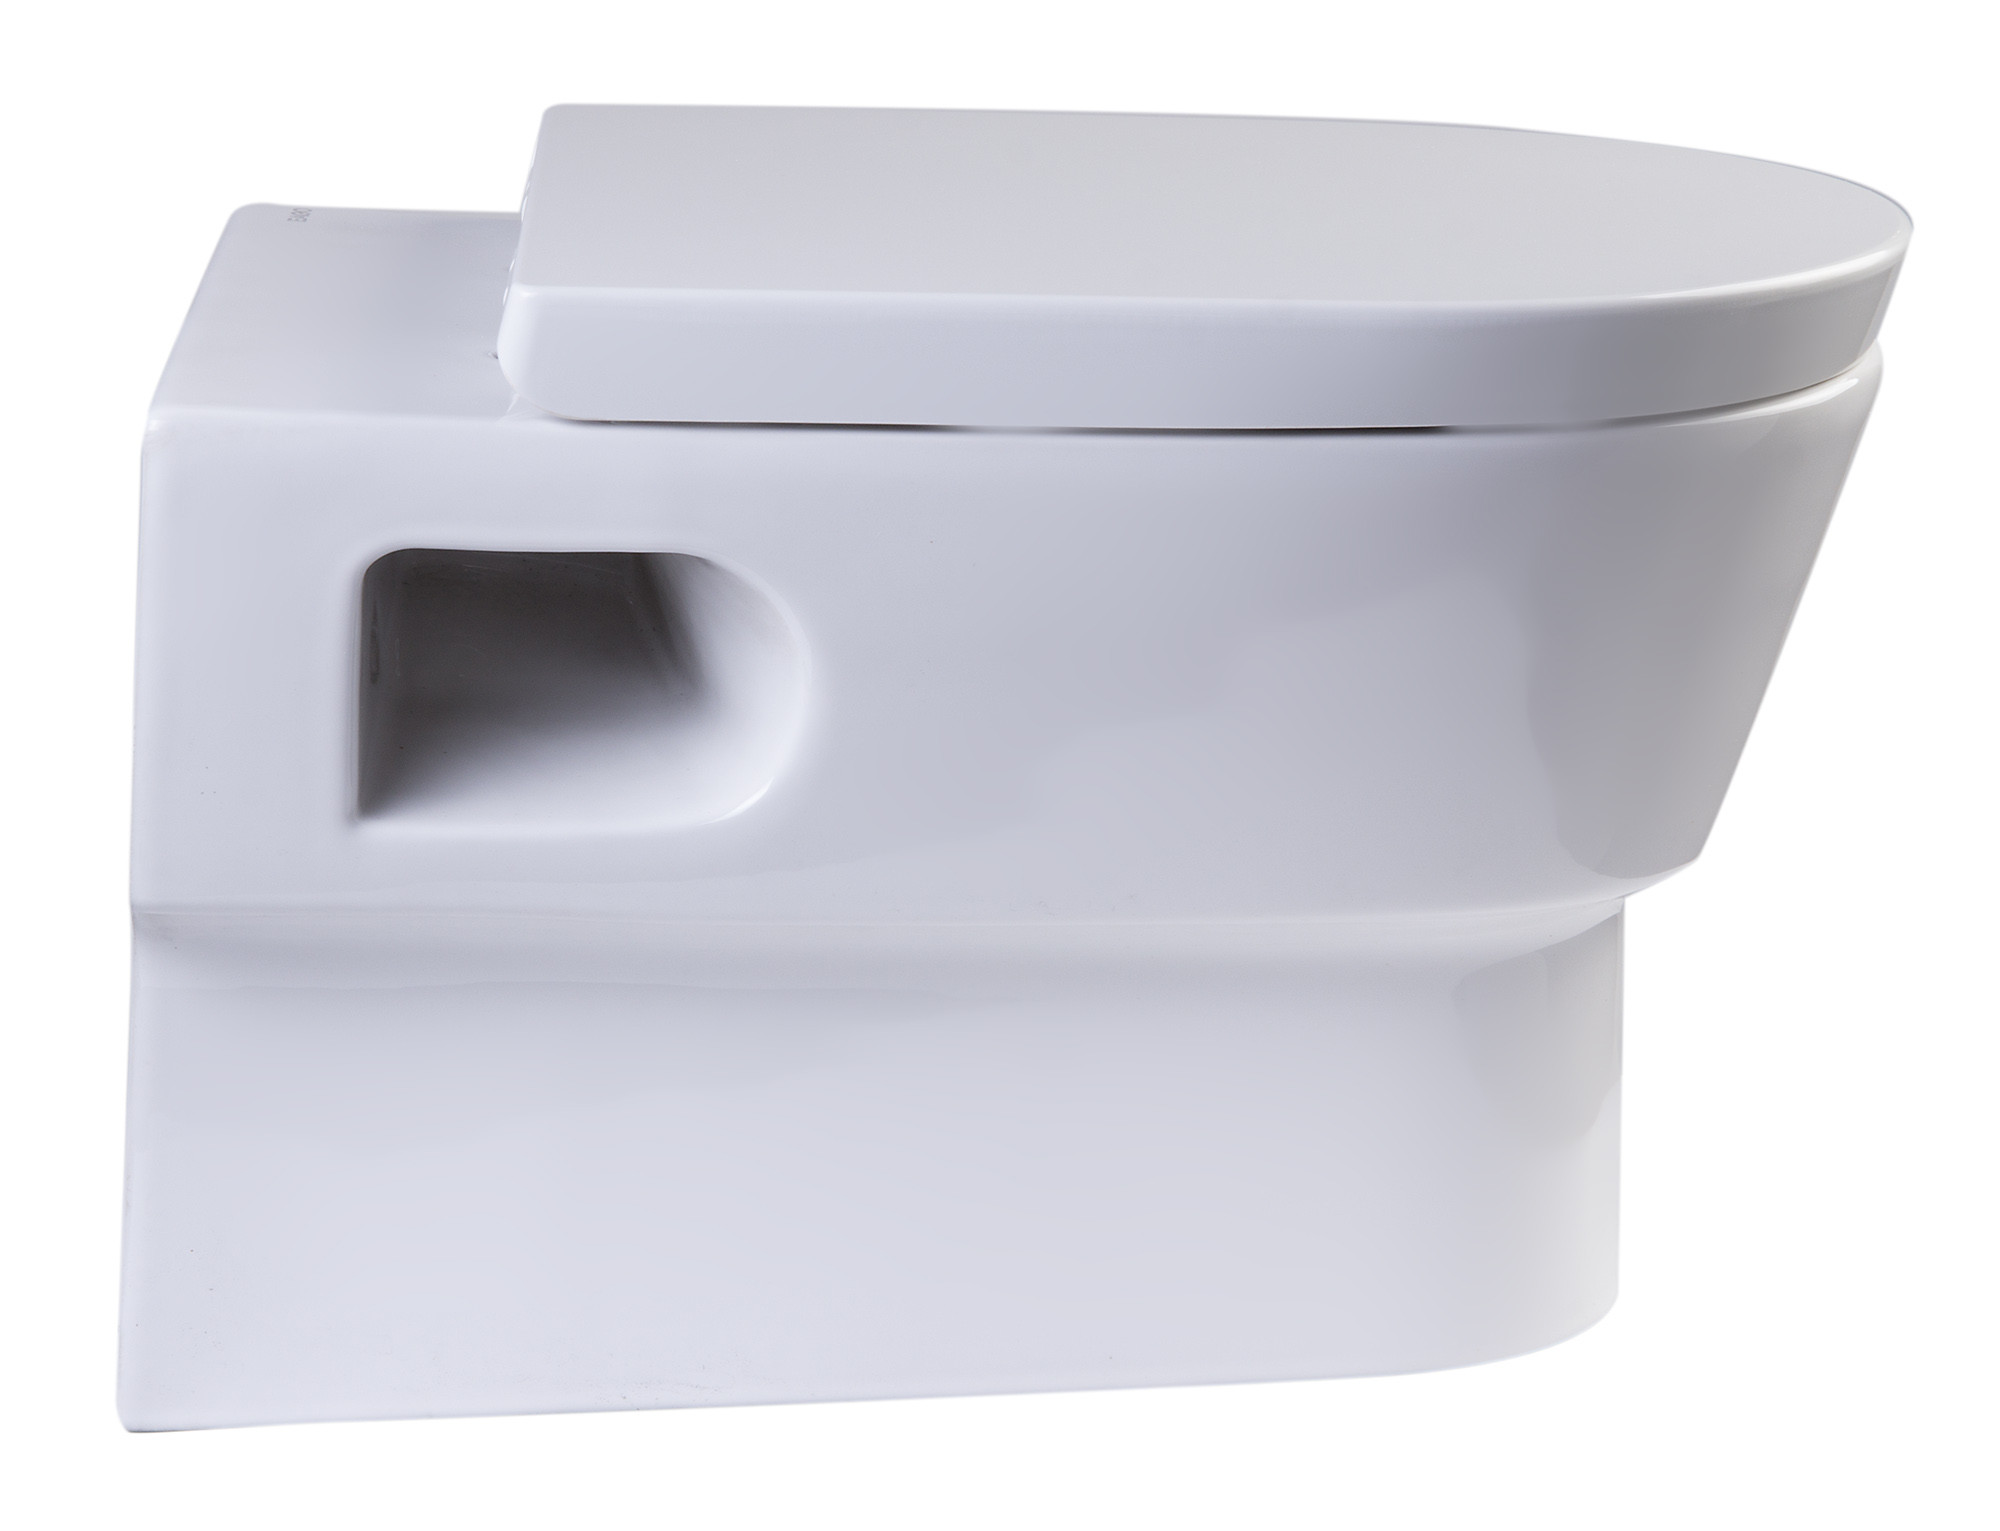 Eago Wd332 Wall Mount Dual Flush White Toilet With In Wall